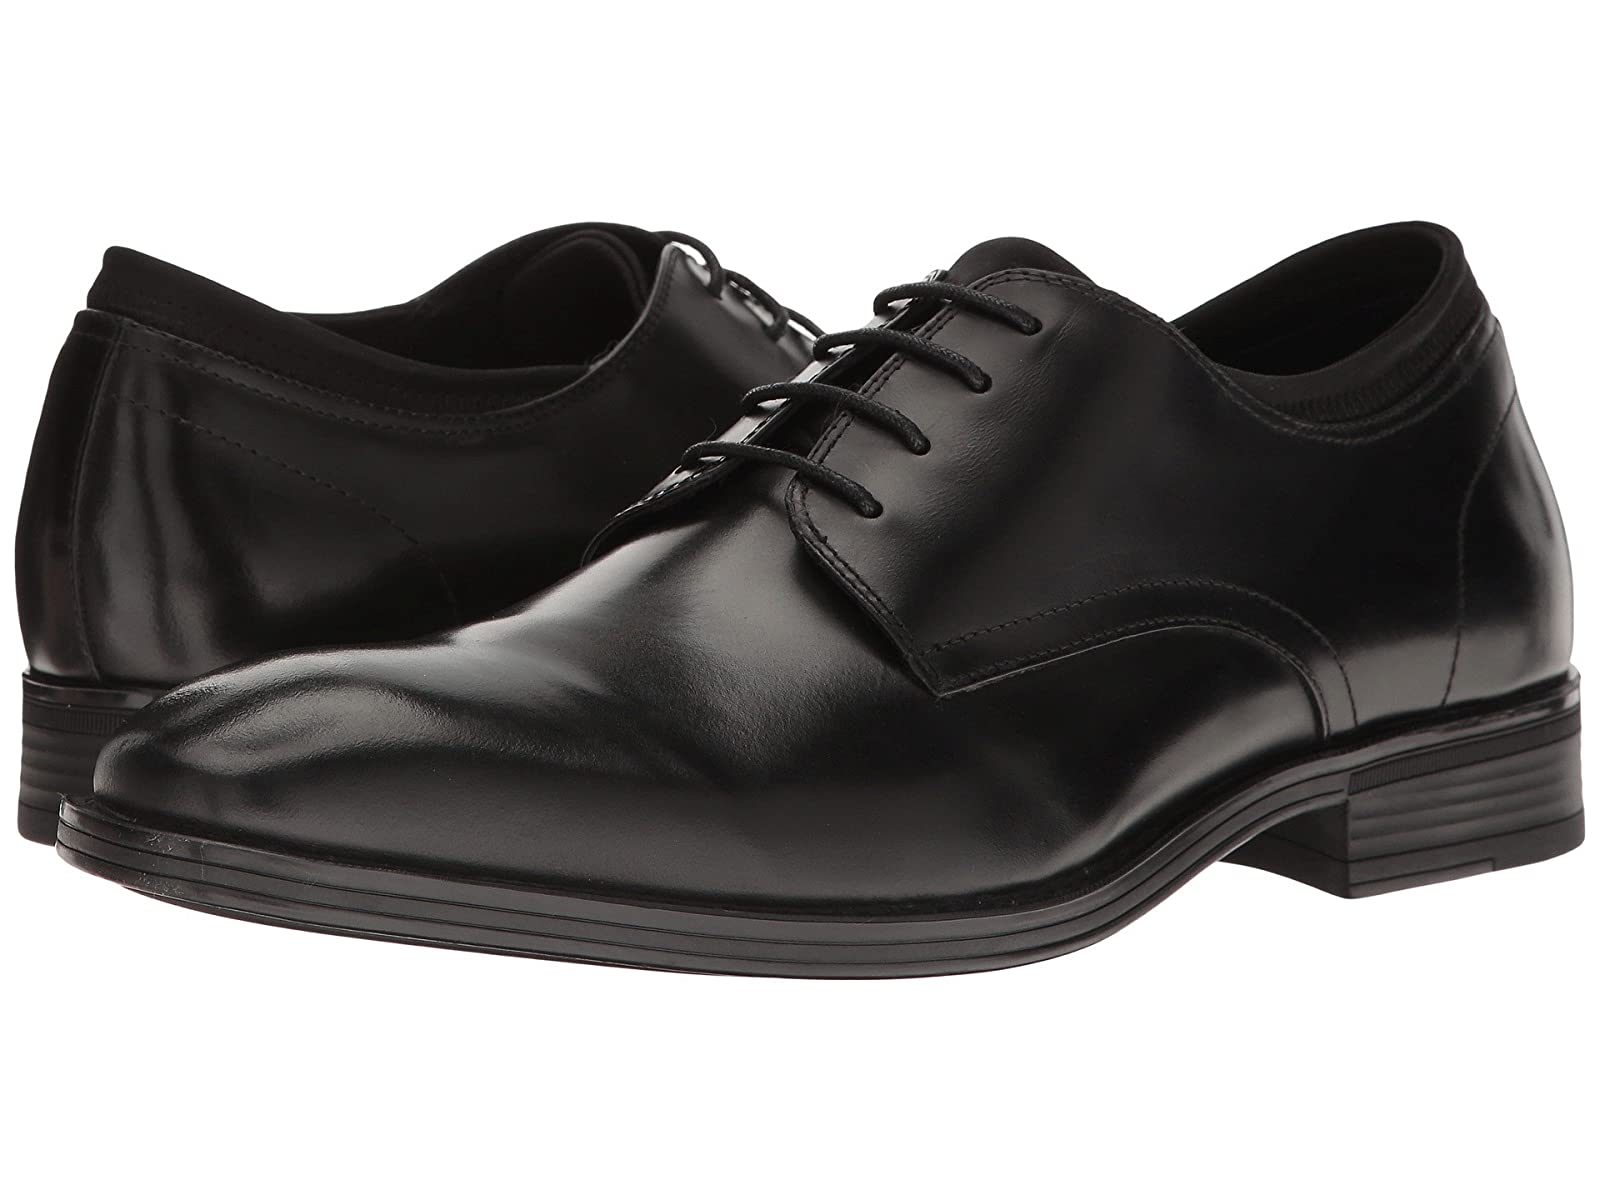 Kenneth Cole New York Sudden ShockCheap and distinctive eye-catching shoes